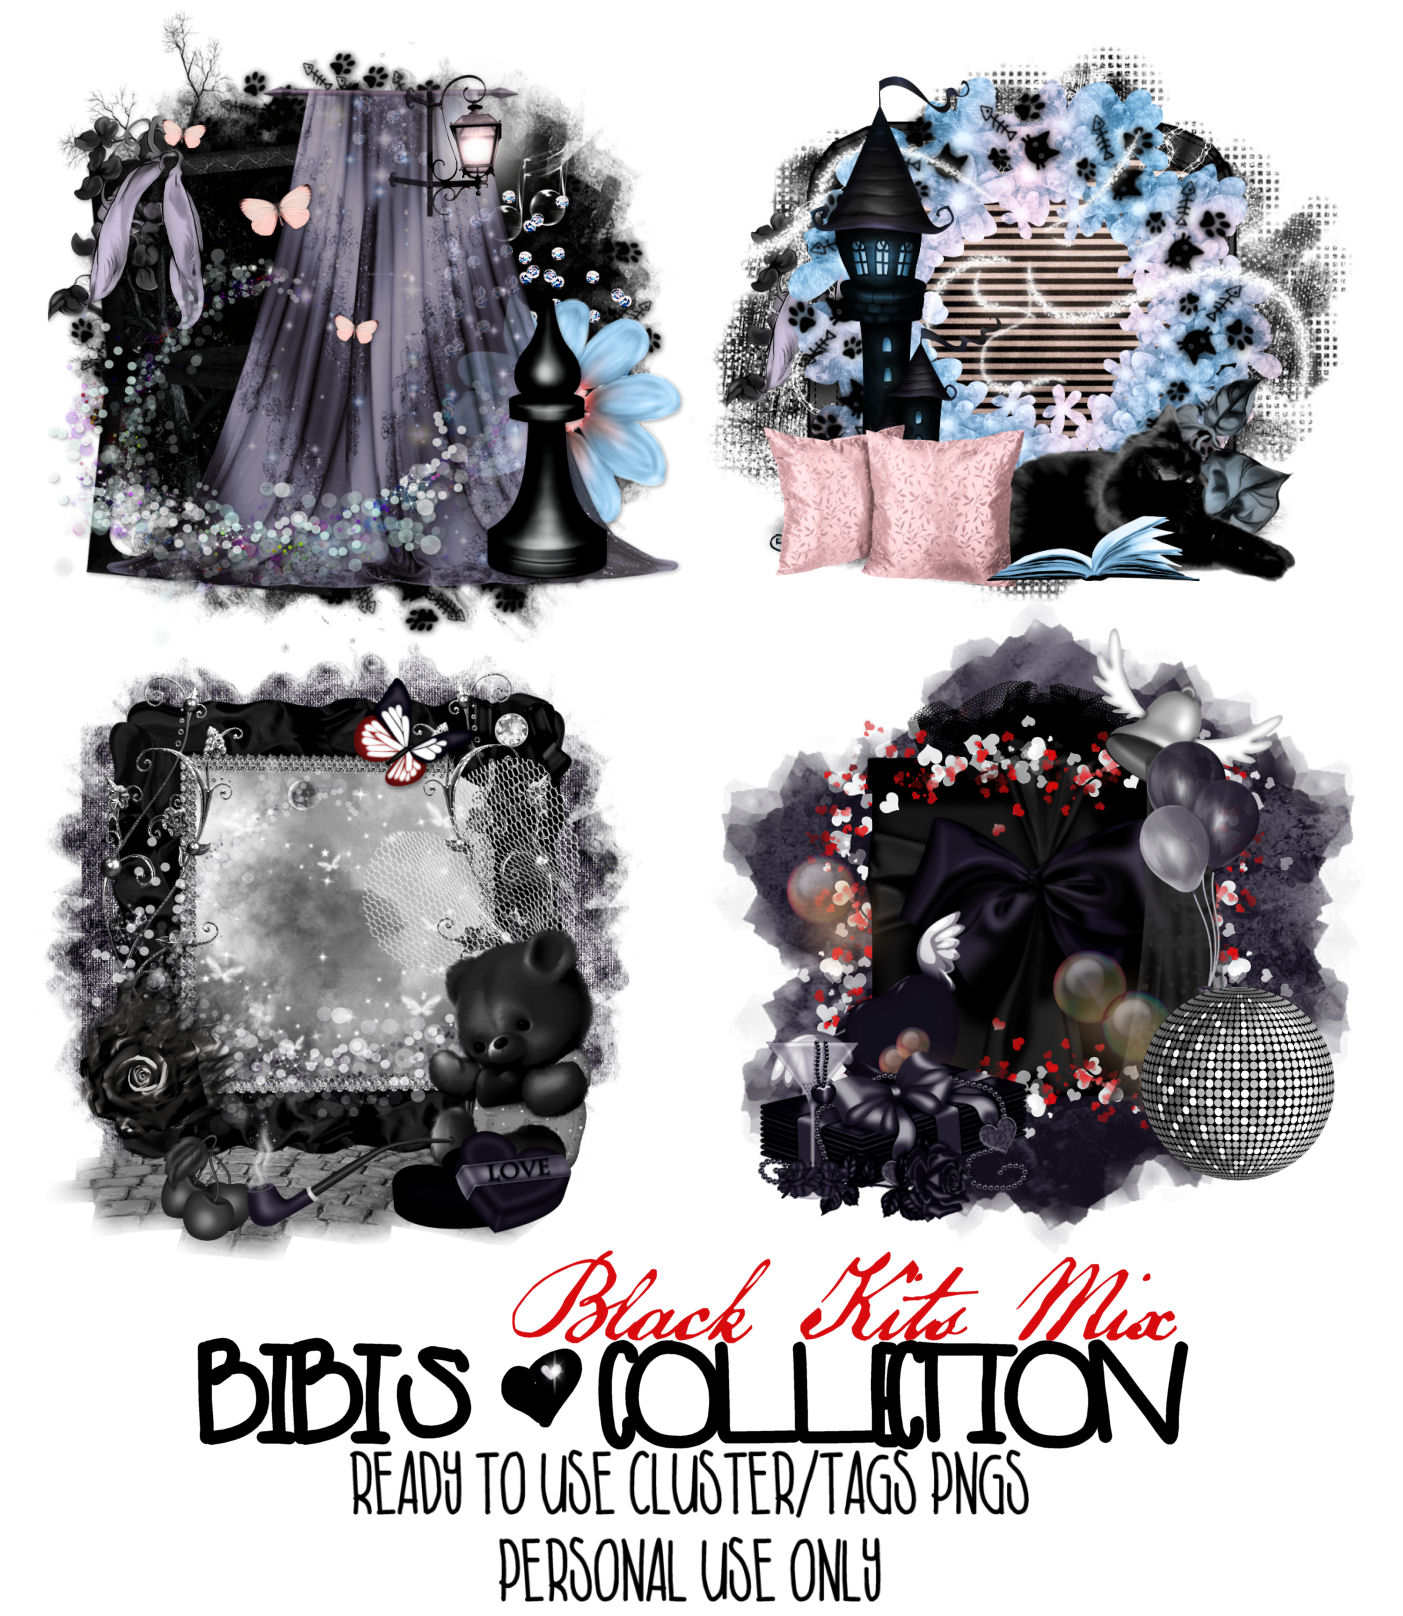 BLACK KITS MIX READY CLUSTER-TAGS PNG